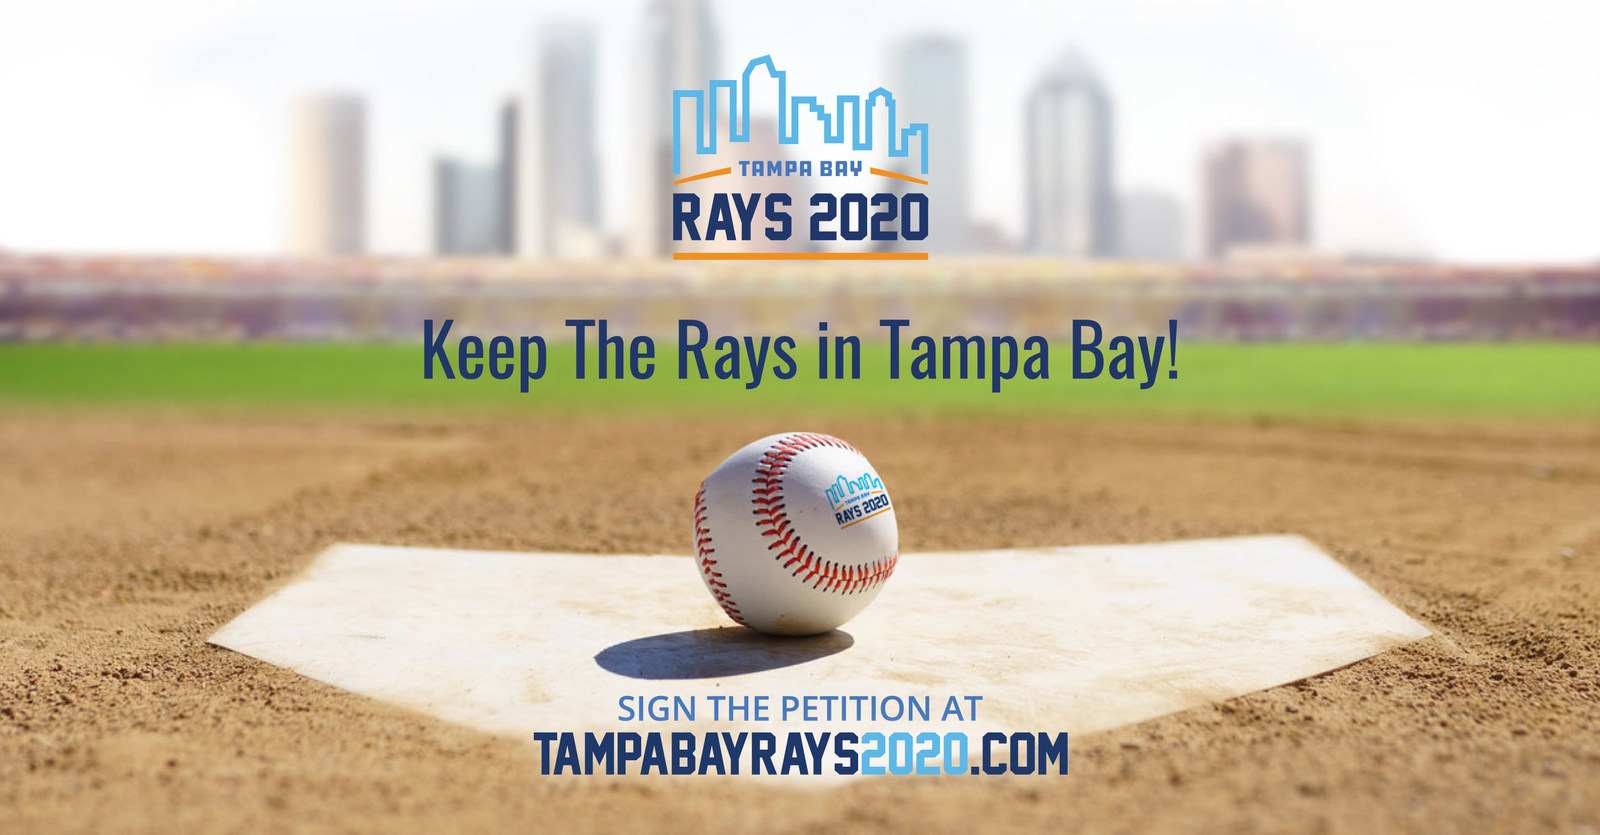 Tampa Bay Rays 2020 Movement Starts Petition To Keep Team